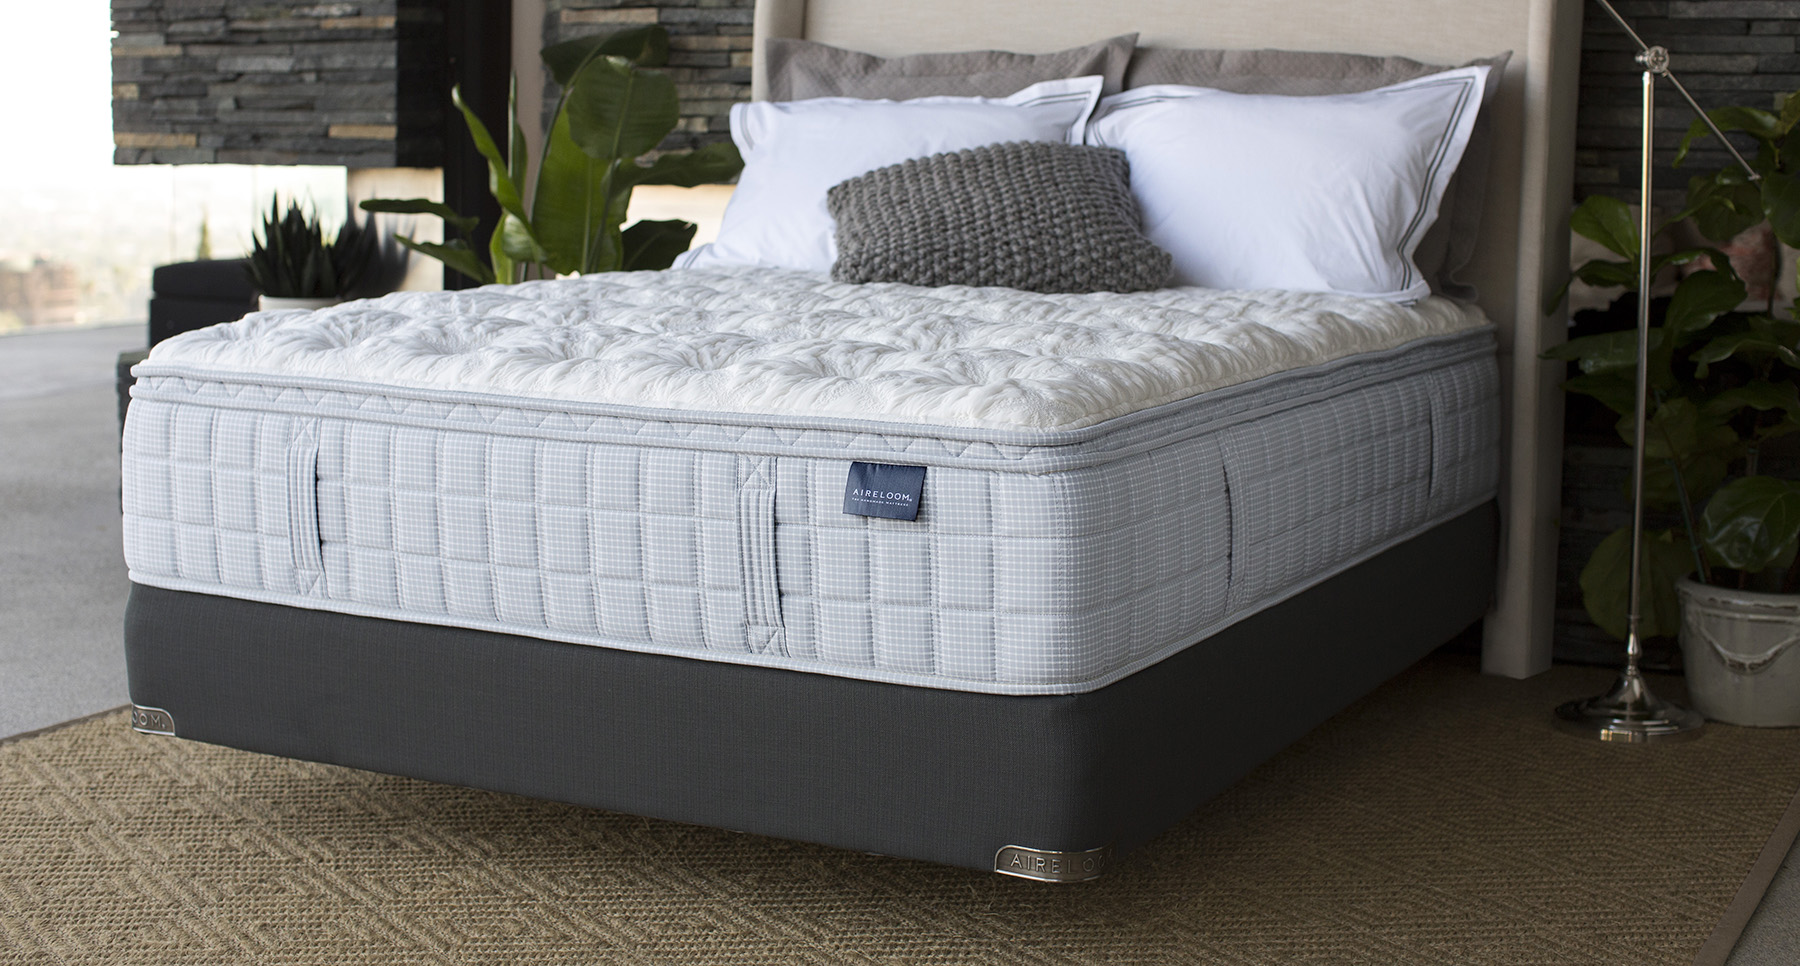 Aireloom Platinum Preferred Enchanted Luxetop Plush Mattress